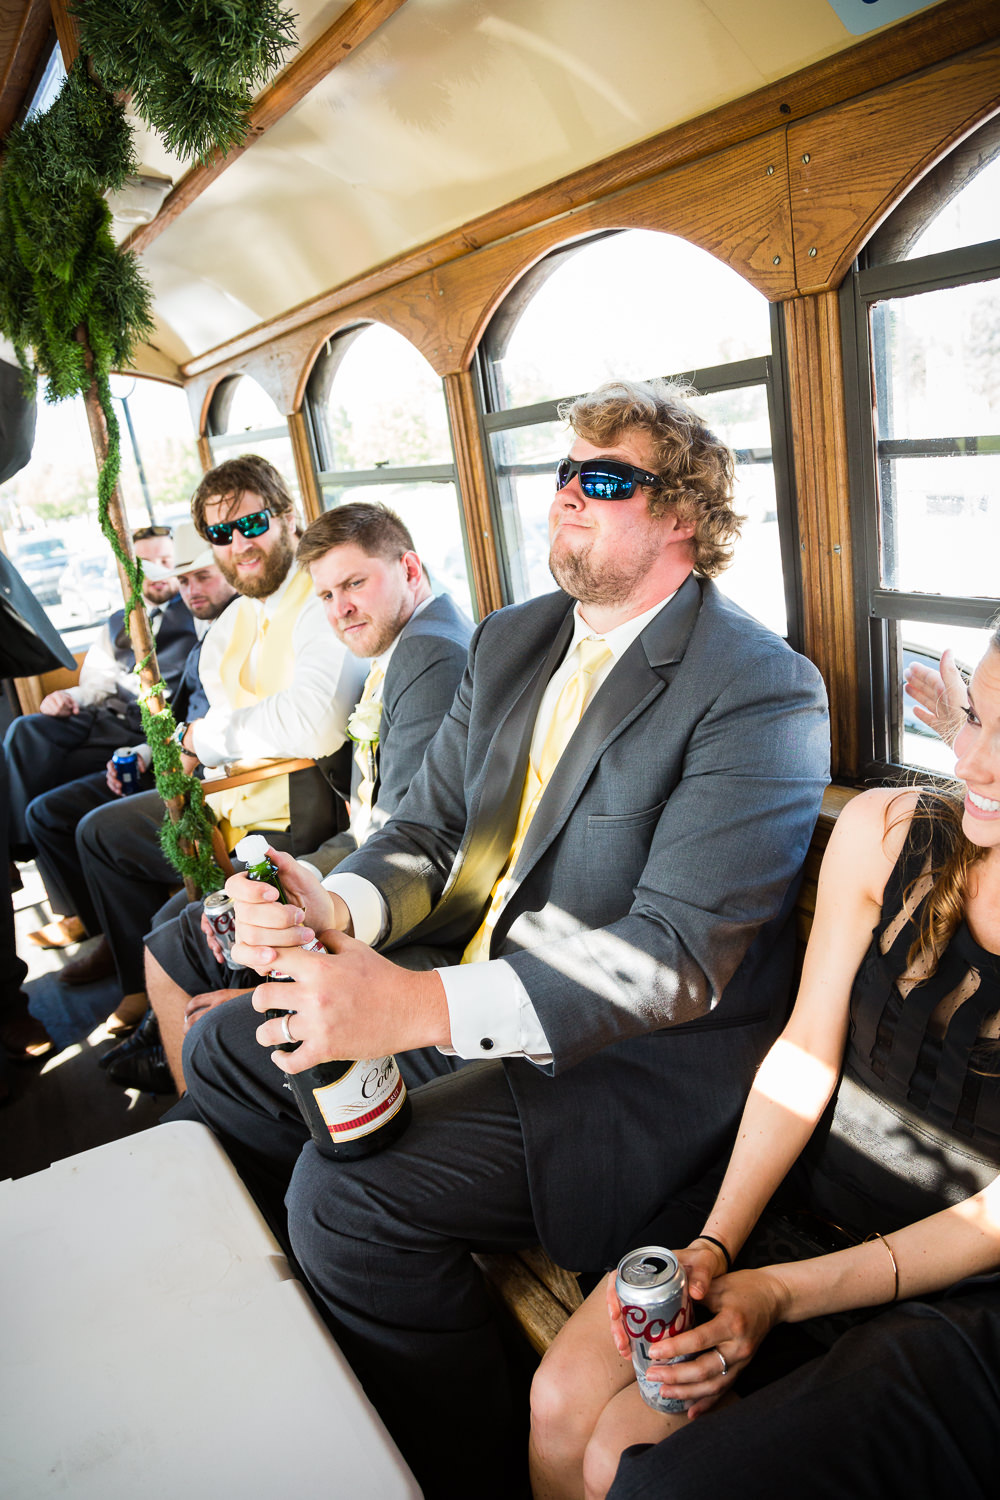 billings-montana-swift-river-ranch-wedding-reception-groomsmen-pops-champagne.jpg